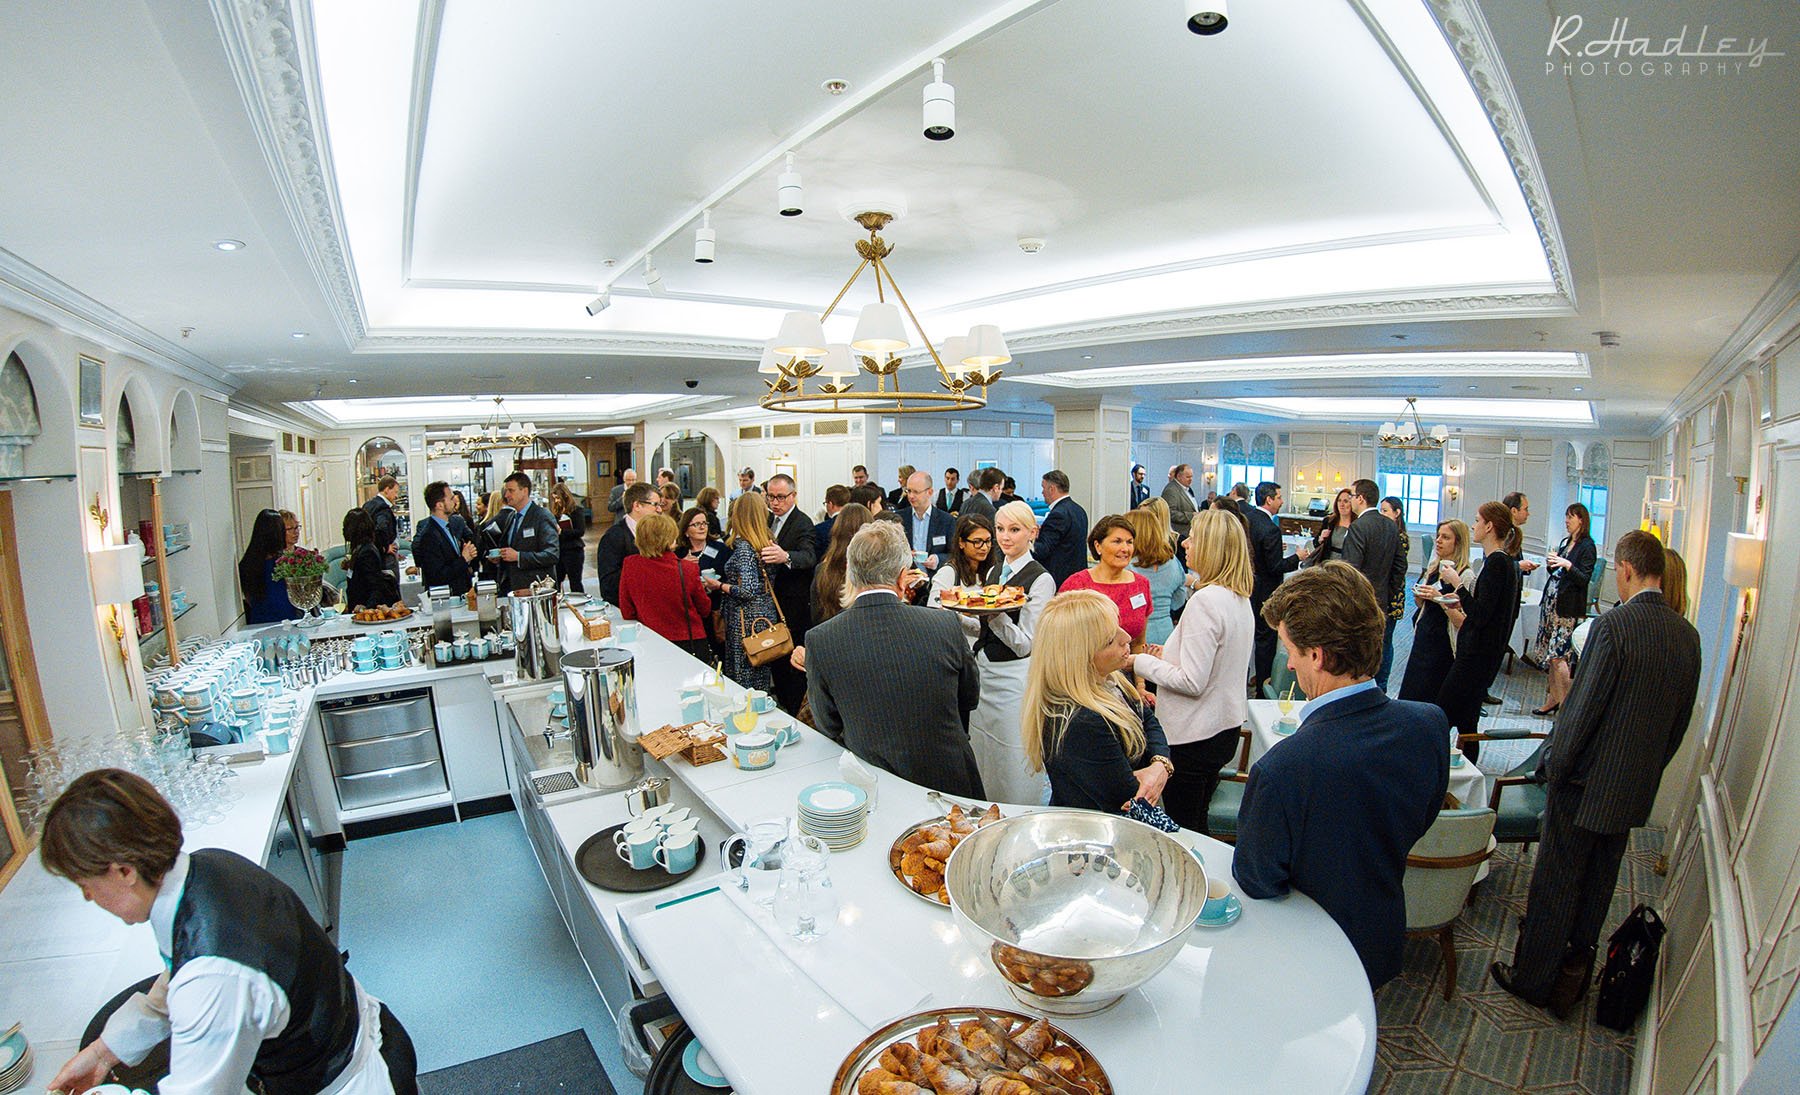 Corporate photography event at Fortnum & Mason, London